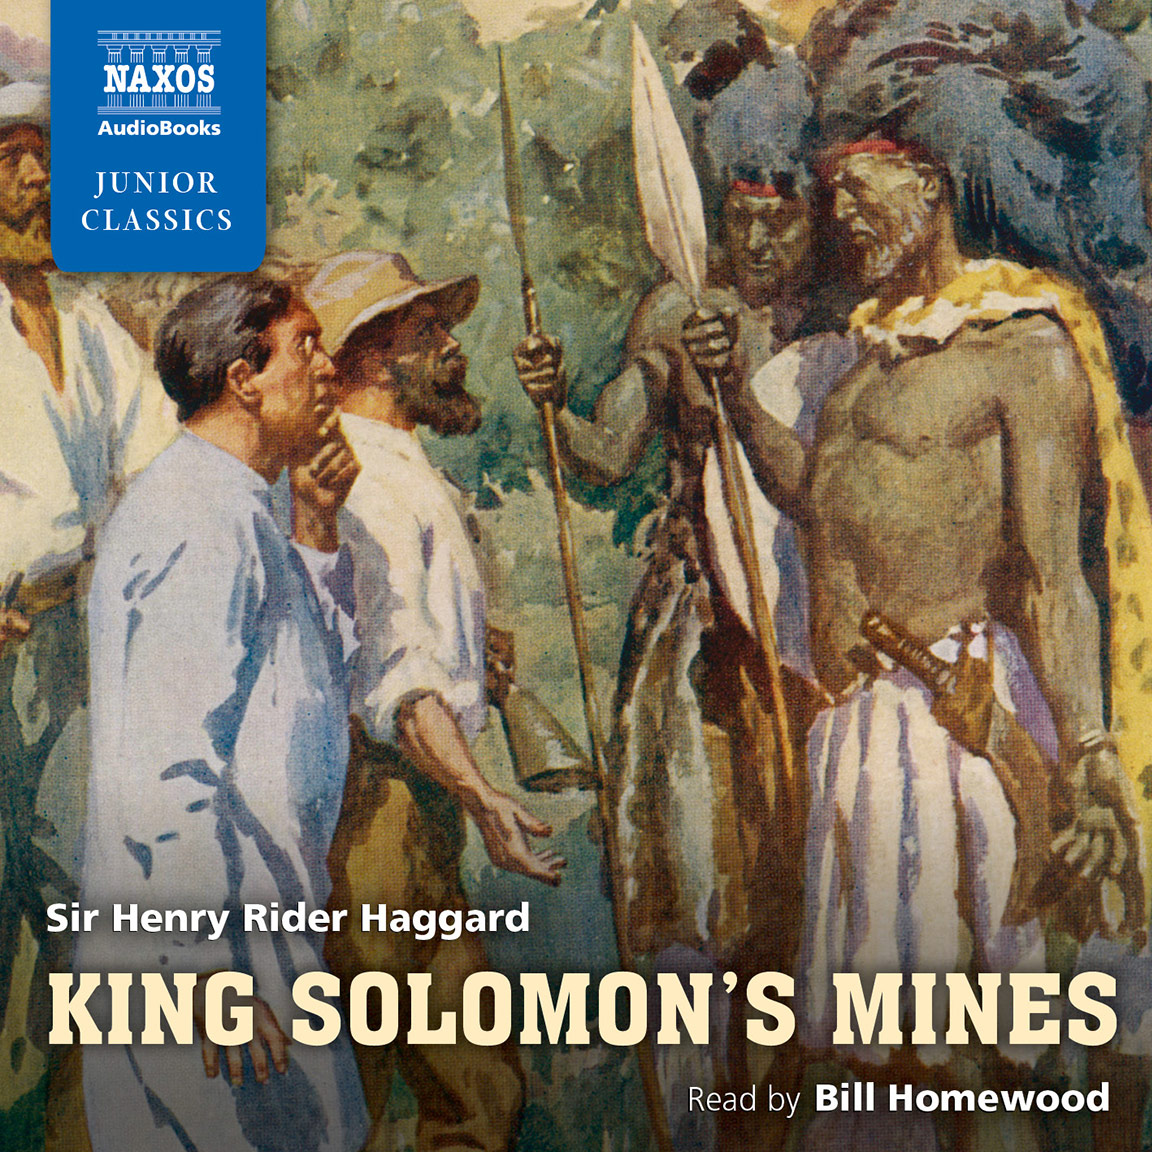 King Solomon's Mines (abridged)